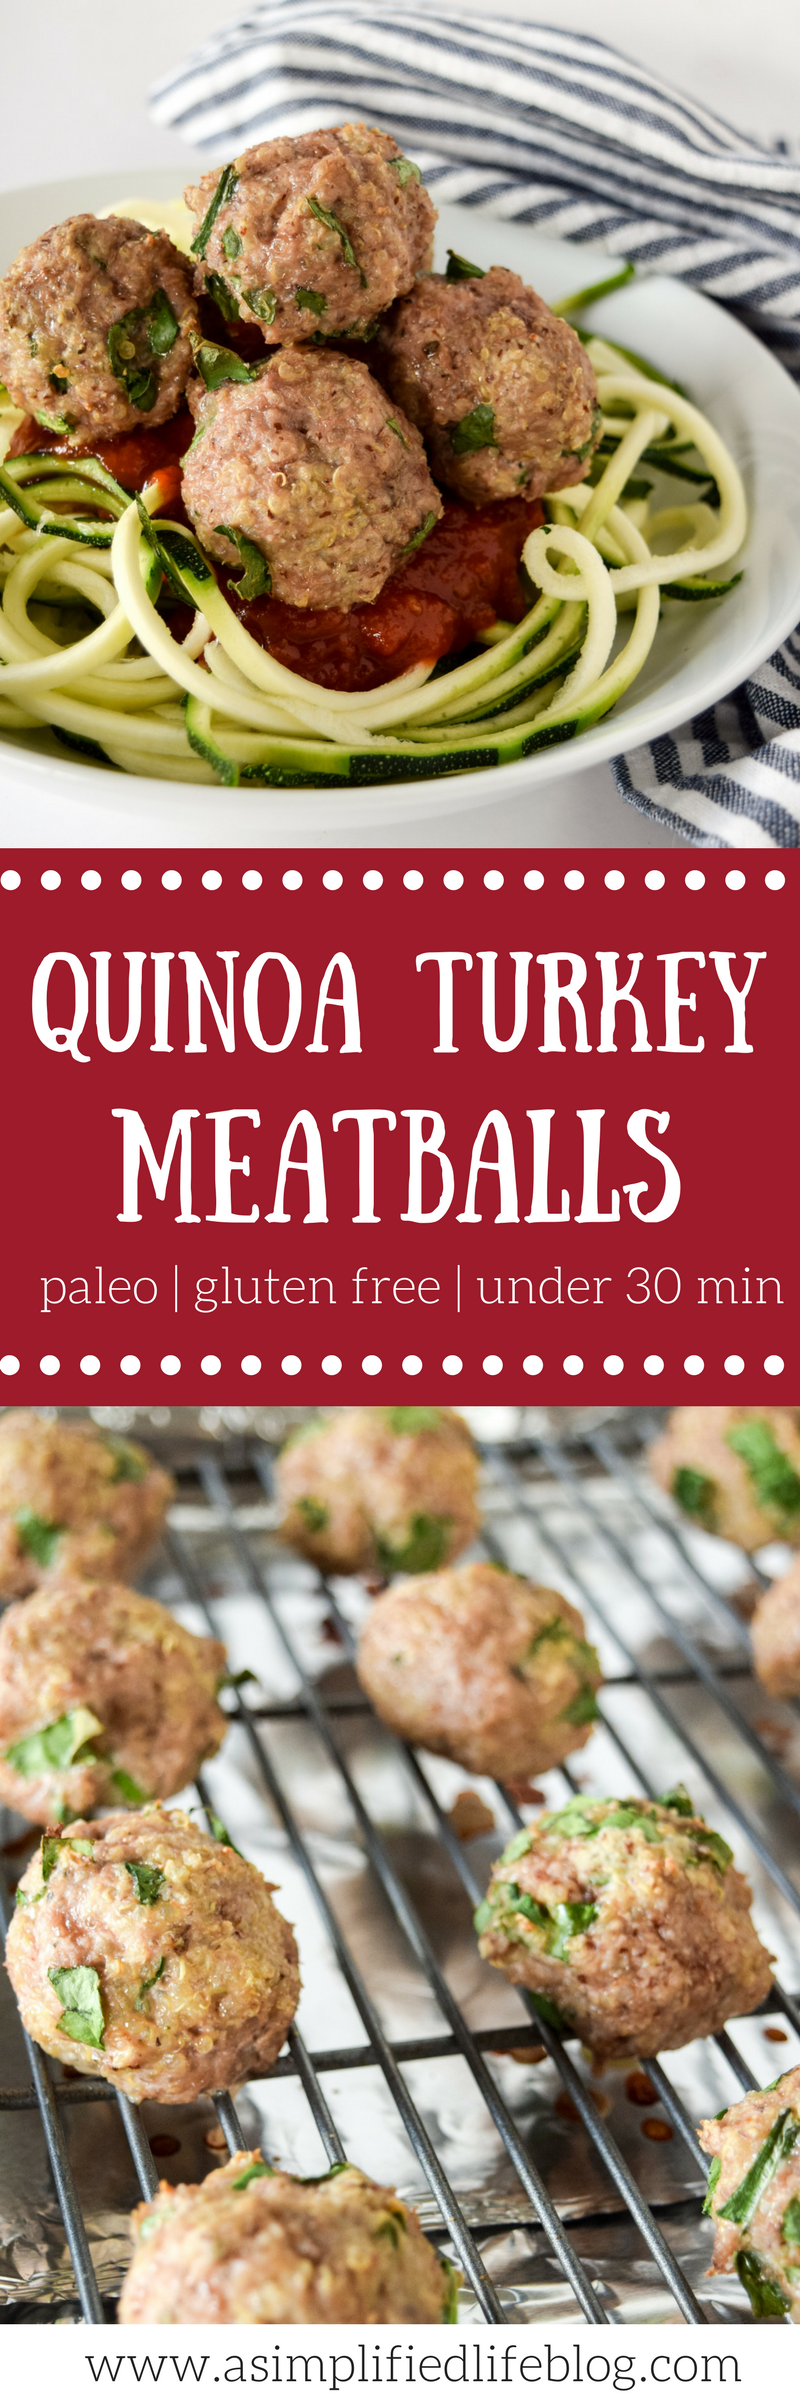 quinoa turkey meatballs | healthy dinner recipes | turkey meatballs | turkey meatballs paleo | turkey meatballs easy | turkey meatballs baked | turkey meatballs recipe | easy paleo dinner | paleo dinner recipes | gluten free meatballs | healthy meatballs